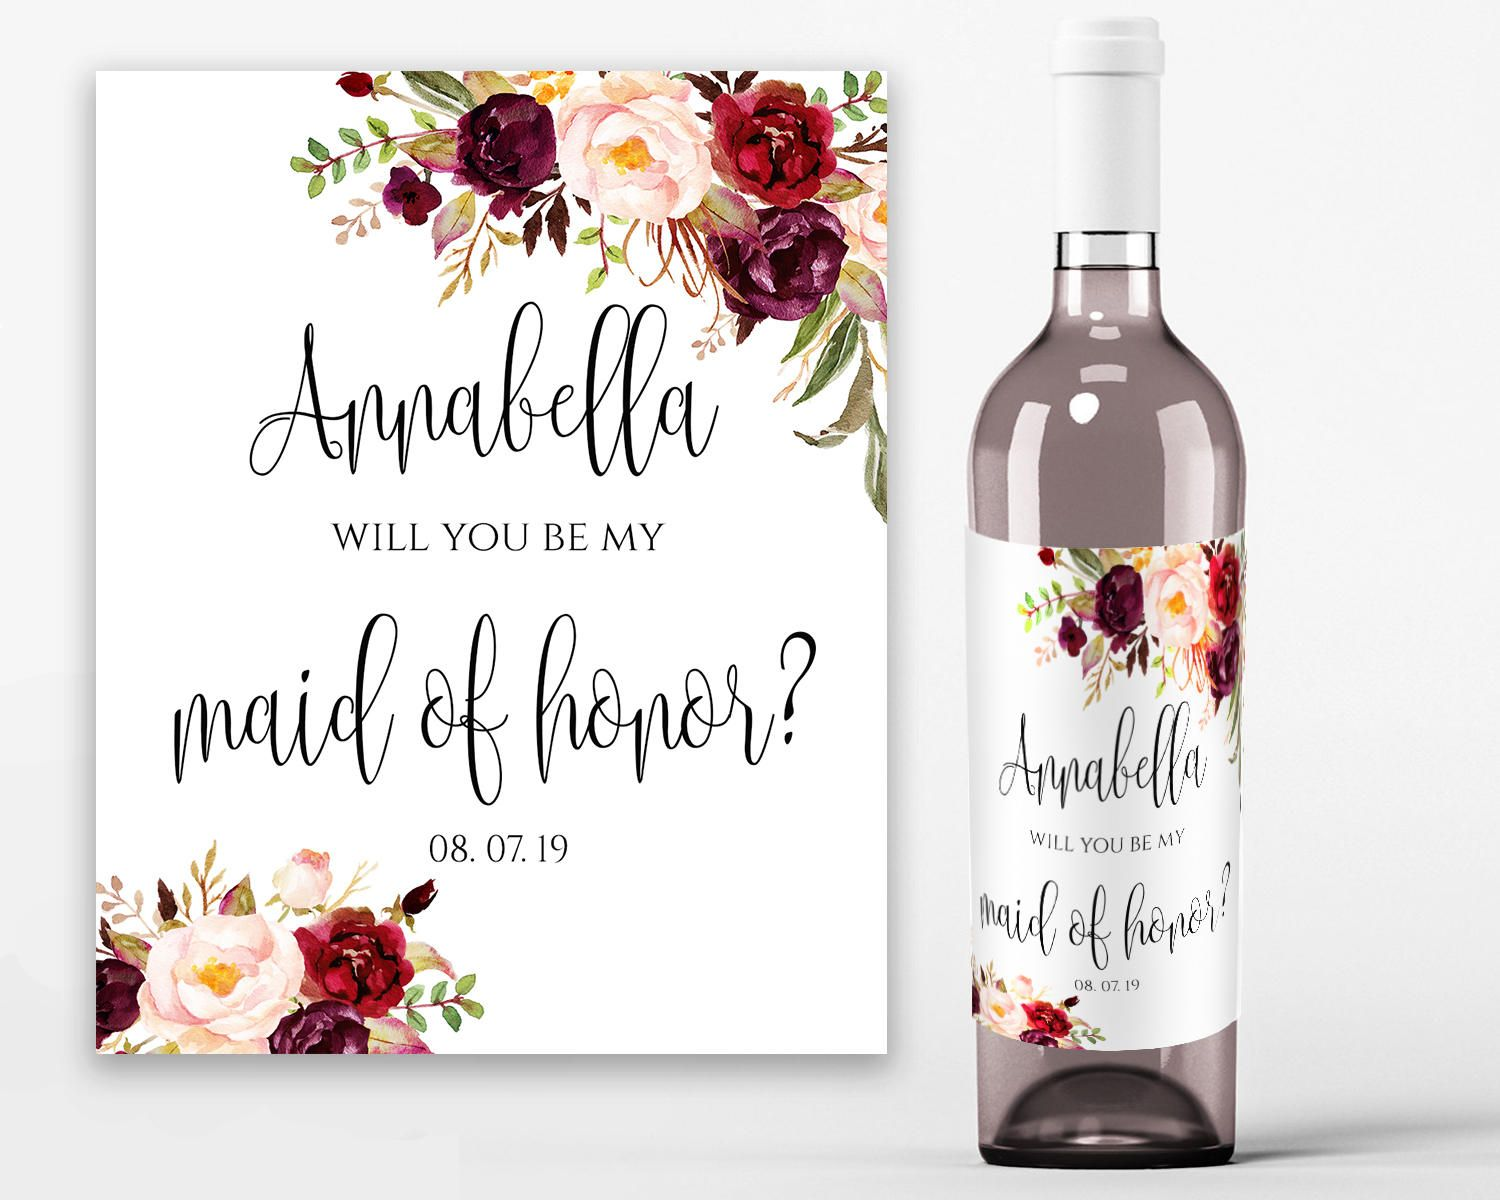 Will You Be My Bridesmaid Wine Label Printable Wine Bottle Etsy Wedding Wine Labels Wine Bottle Labels Wedding Bridesmaid Wine Label